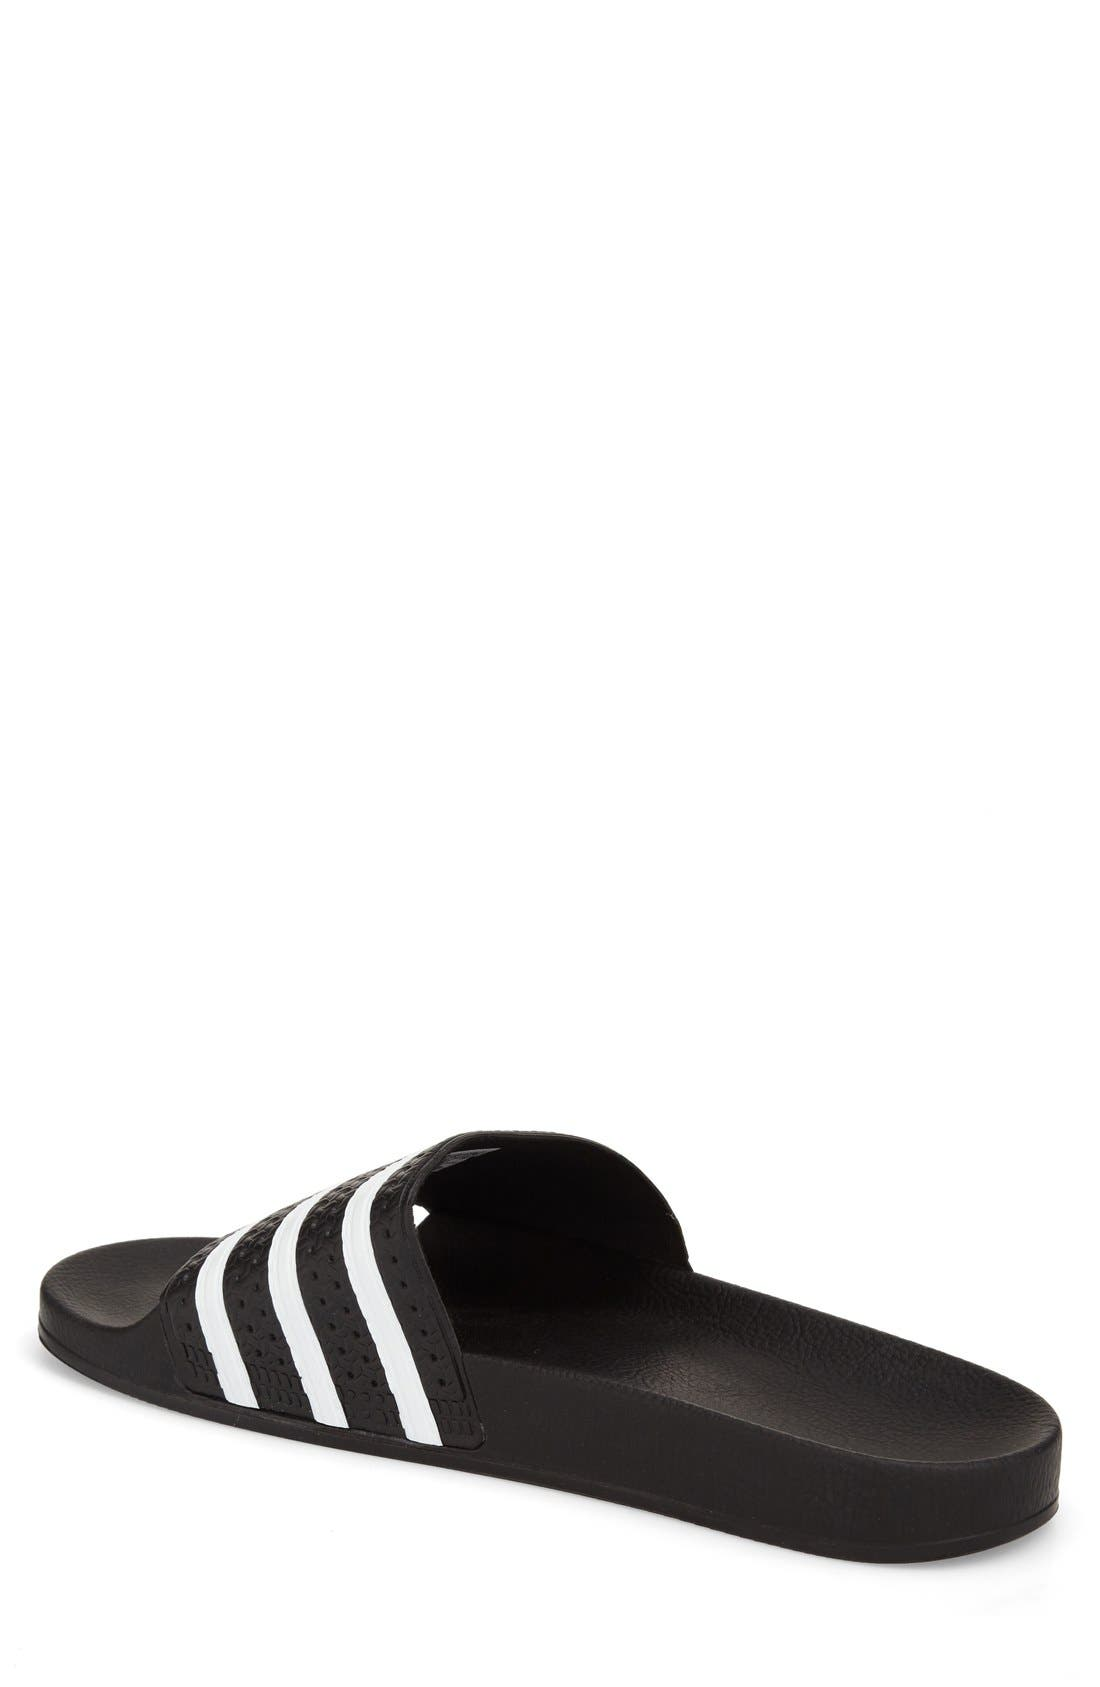 'Adilette' Slide Sandal,                             Alternate thumbnail 4, color,                             BLACK/ WHITE/ BLACK